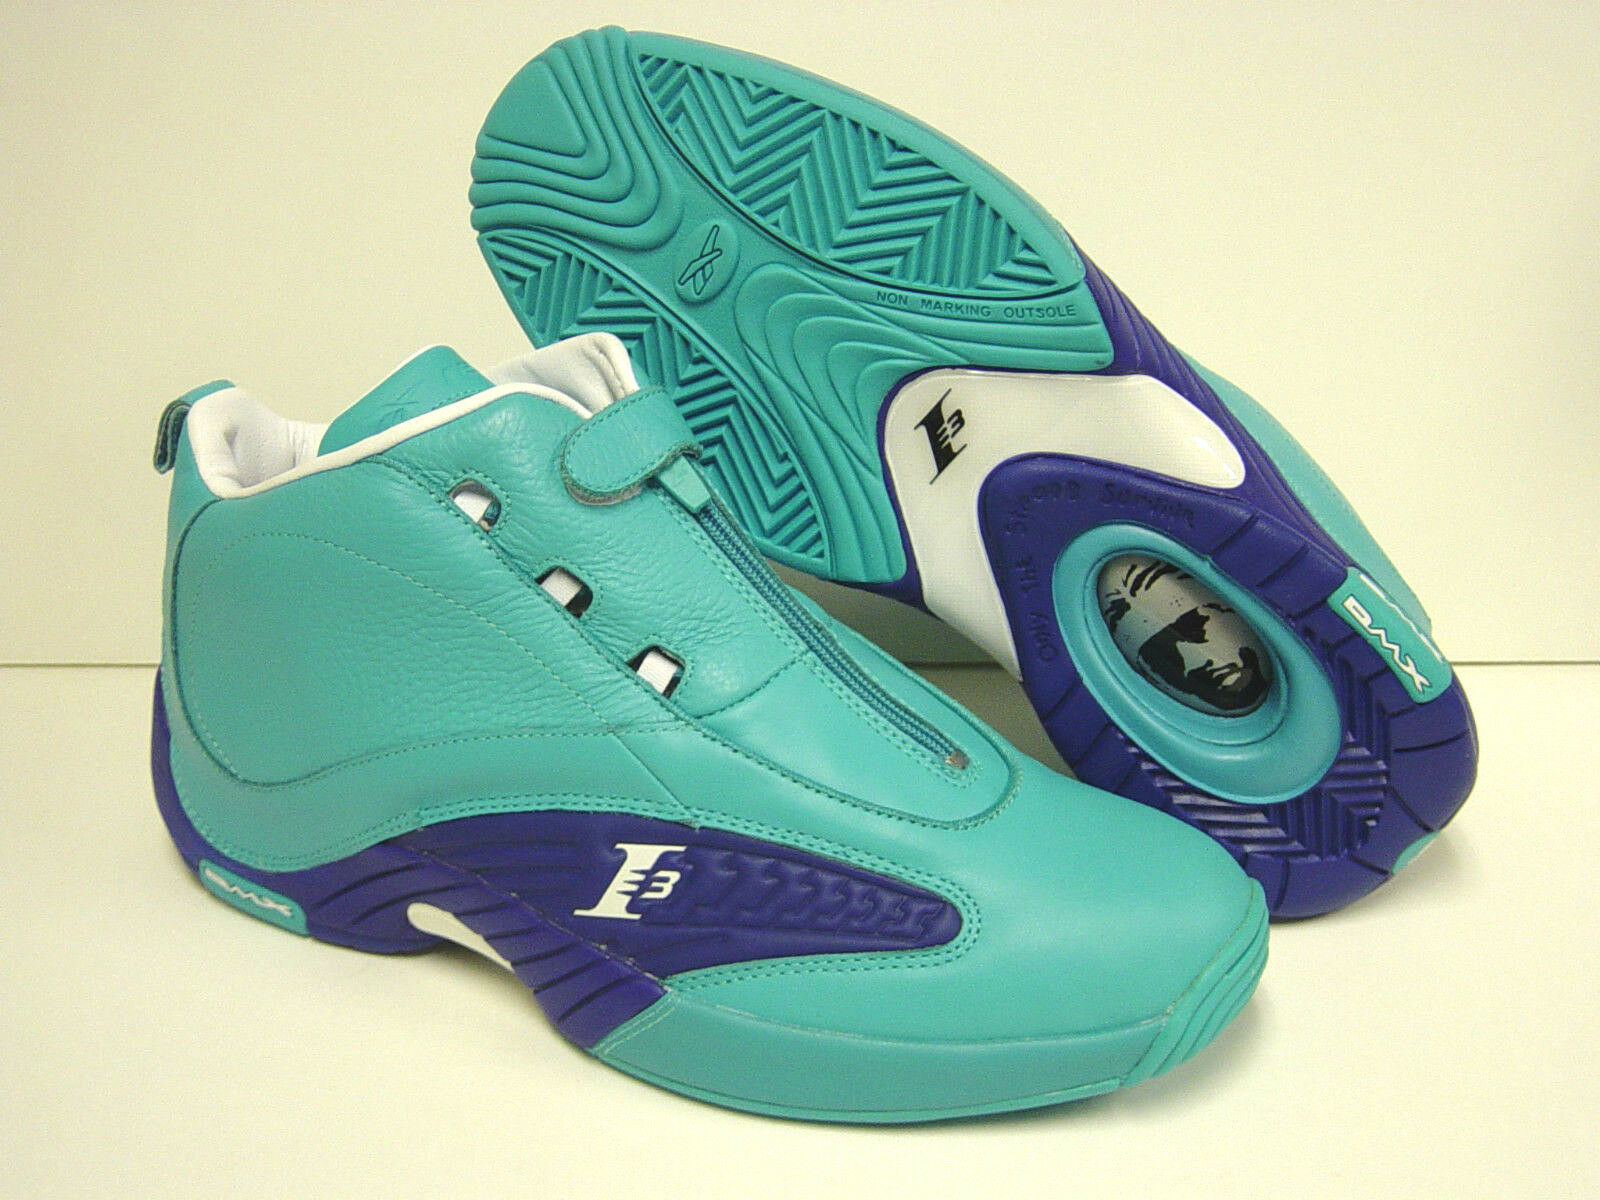 NEW Uomo Sz REEBOK Answer IV Mid Teal Blue SAMPLE AI IVERSON  Shoes Rare